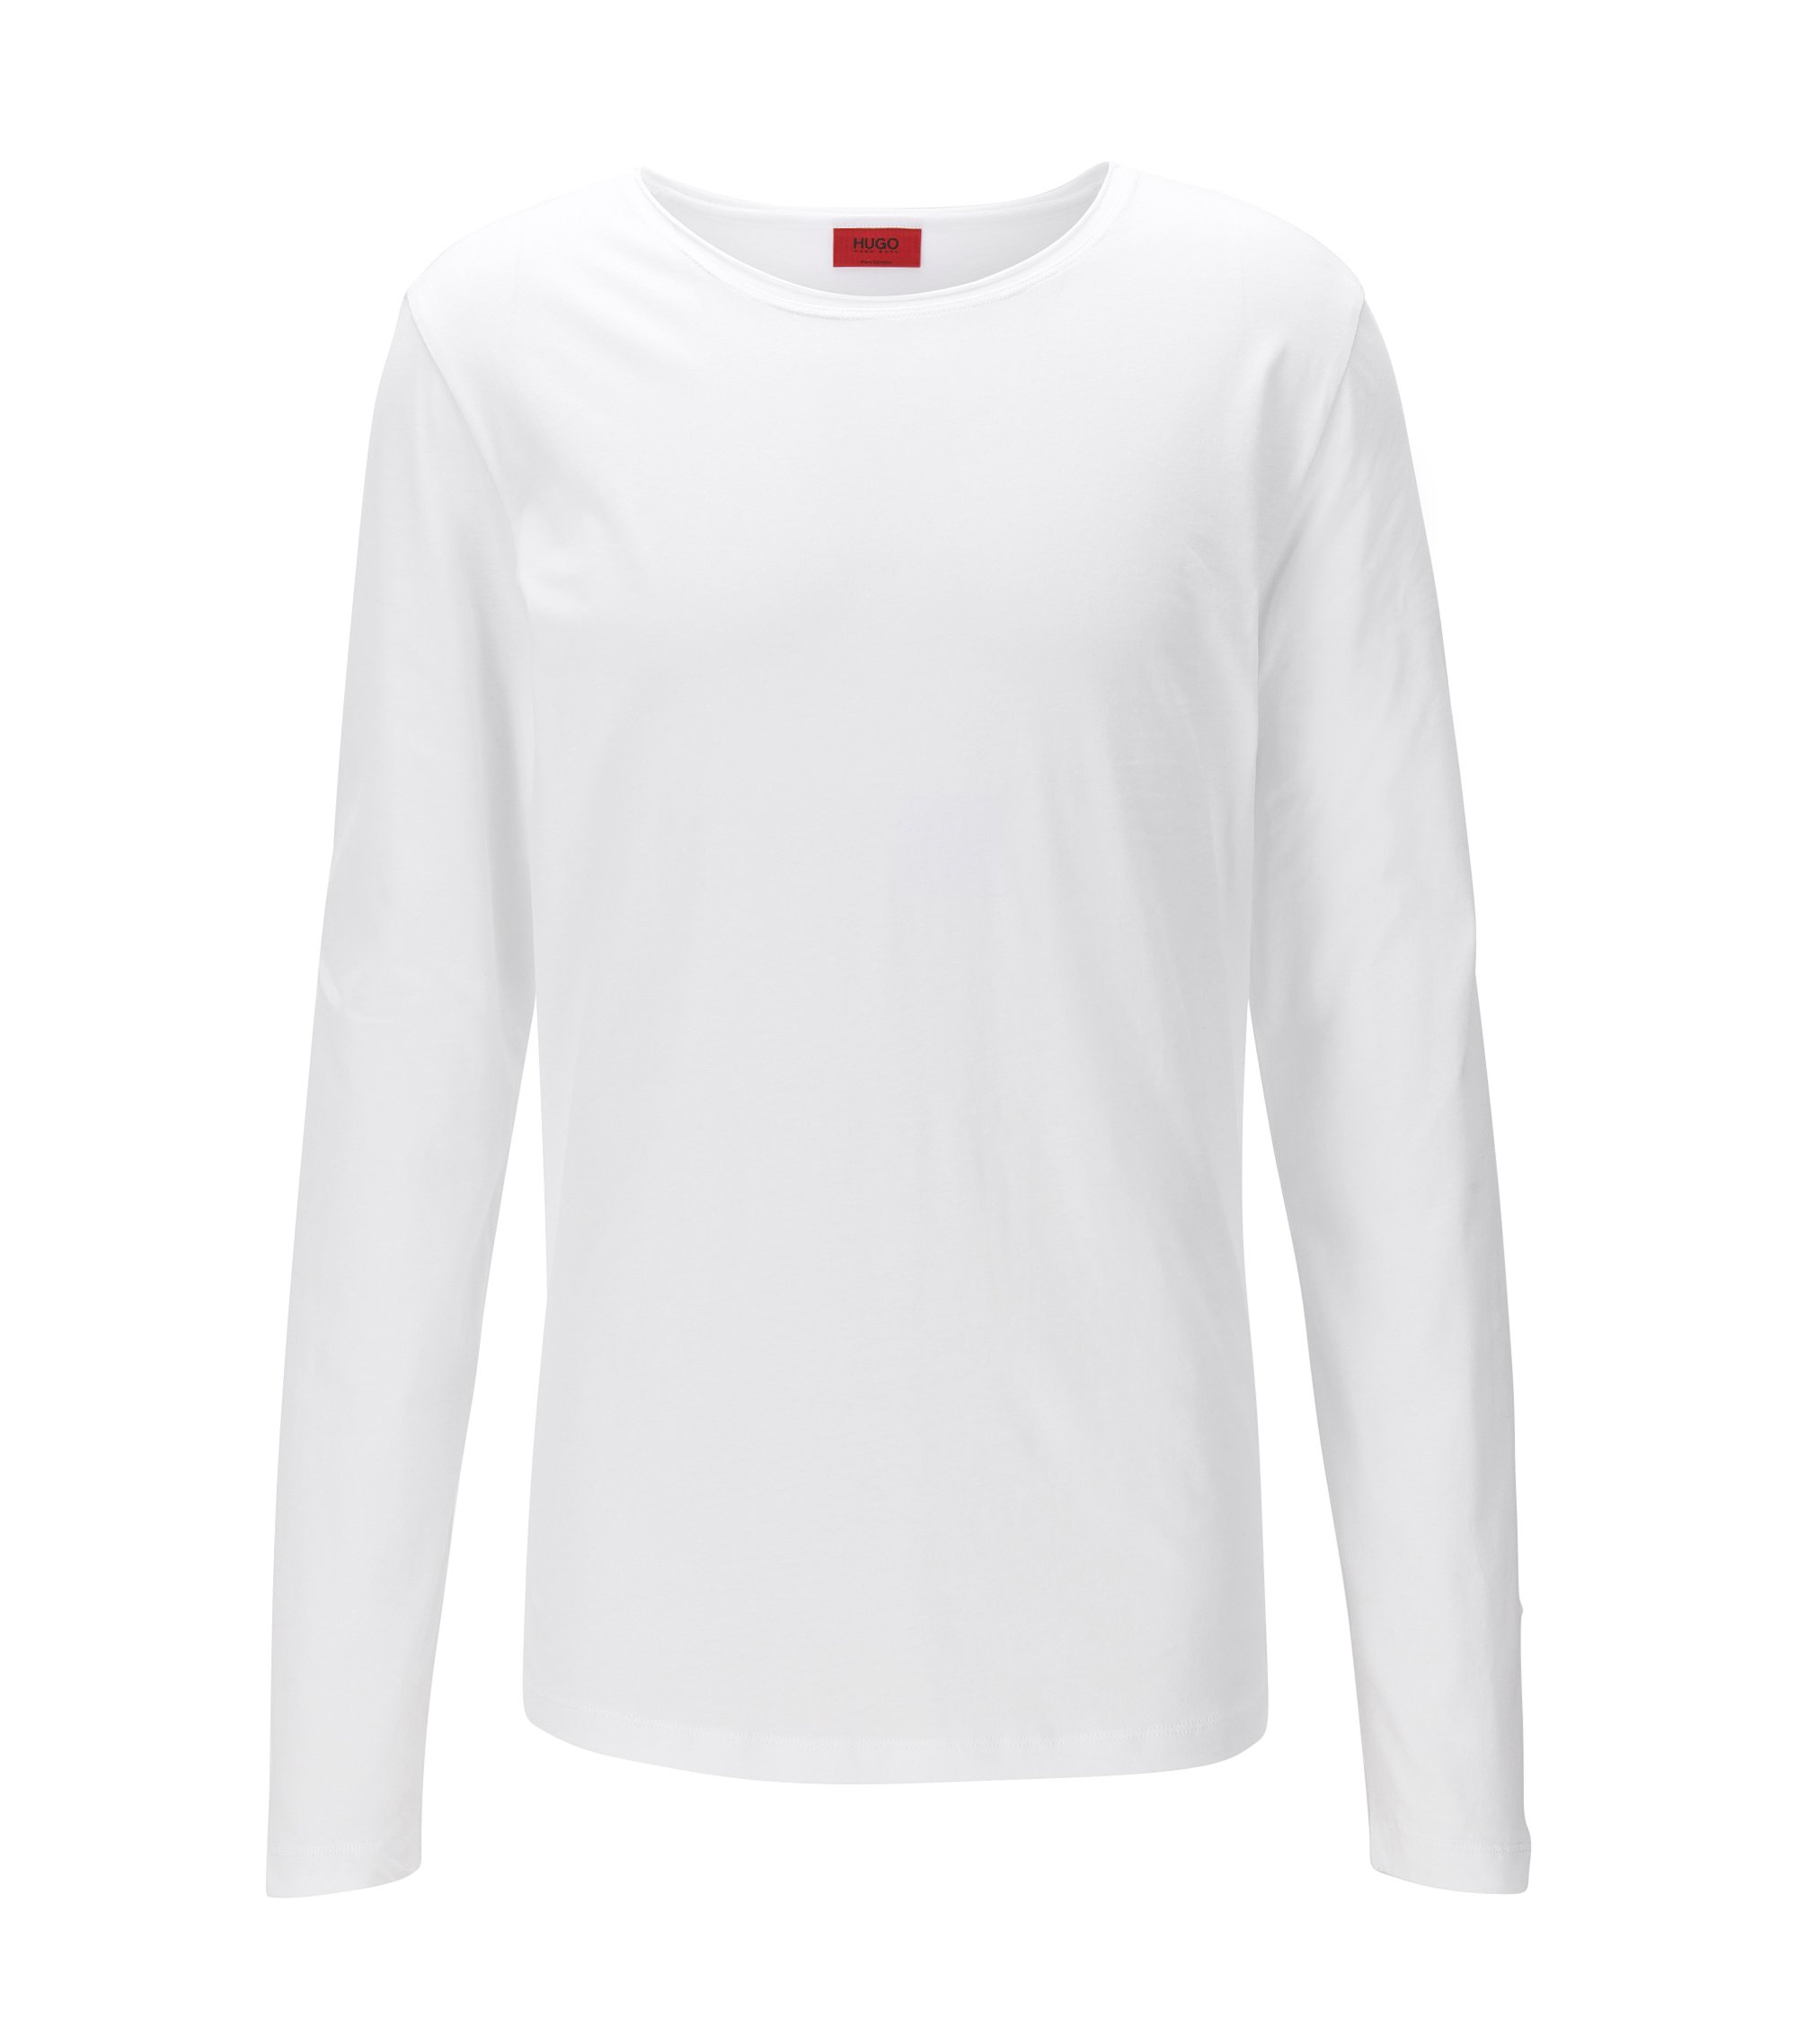 T-shirt Relaxed Fit à manches longues en coton Supima, Blanc